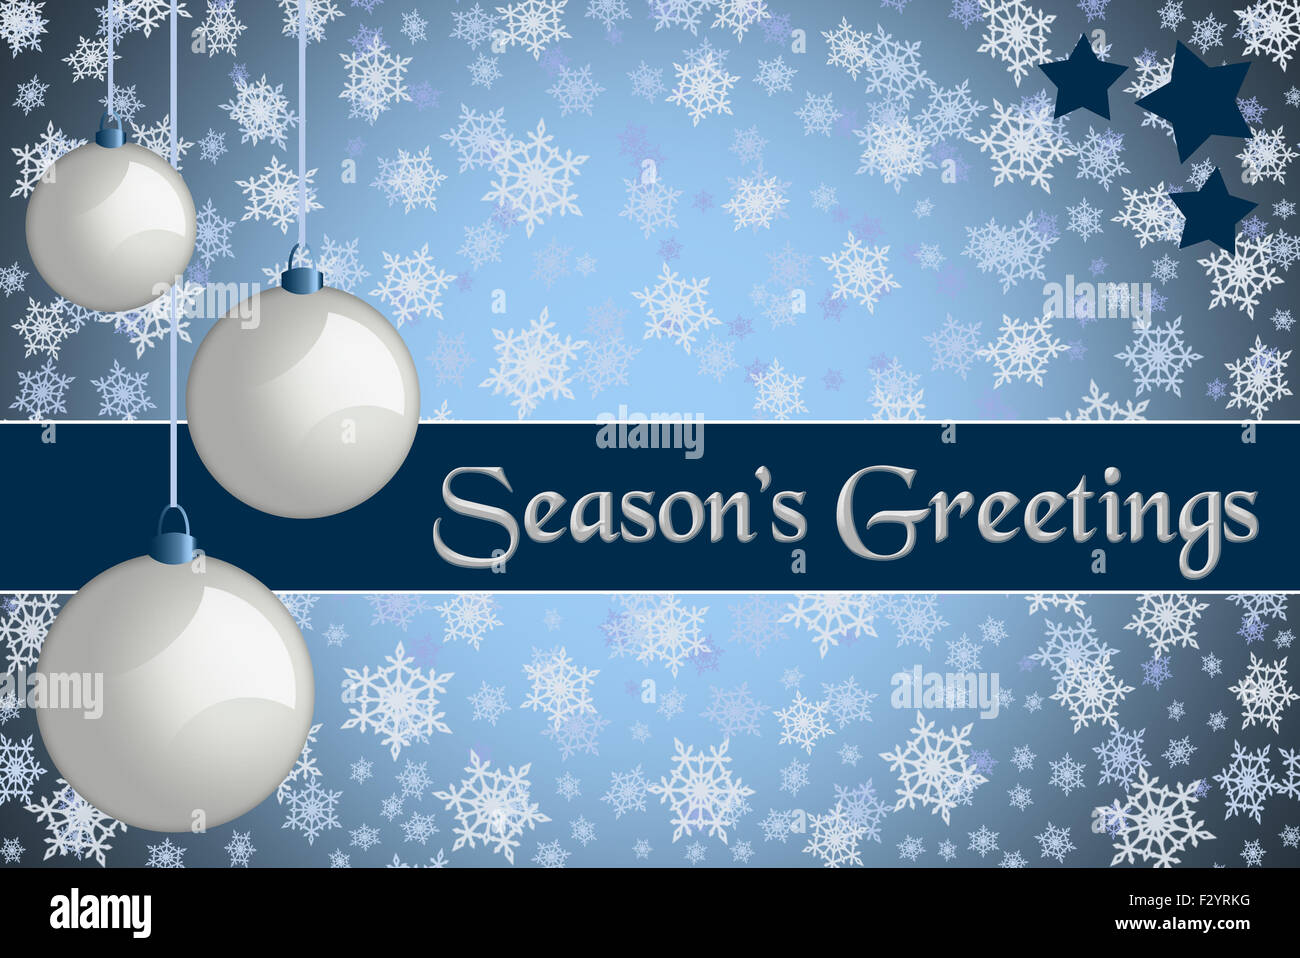 Christmas Greeting Card Seasons Greetings Blue Colored